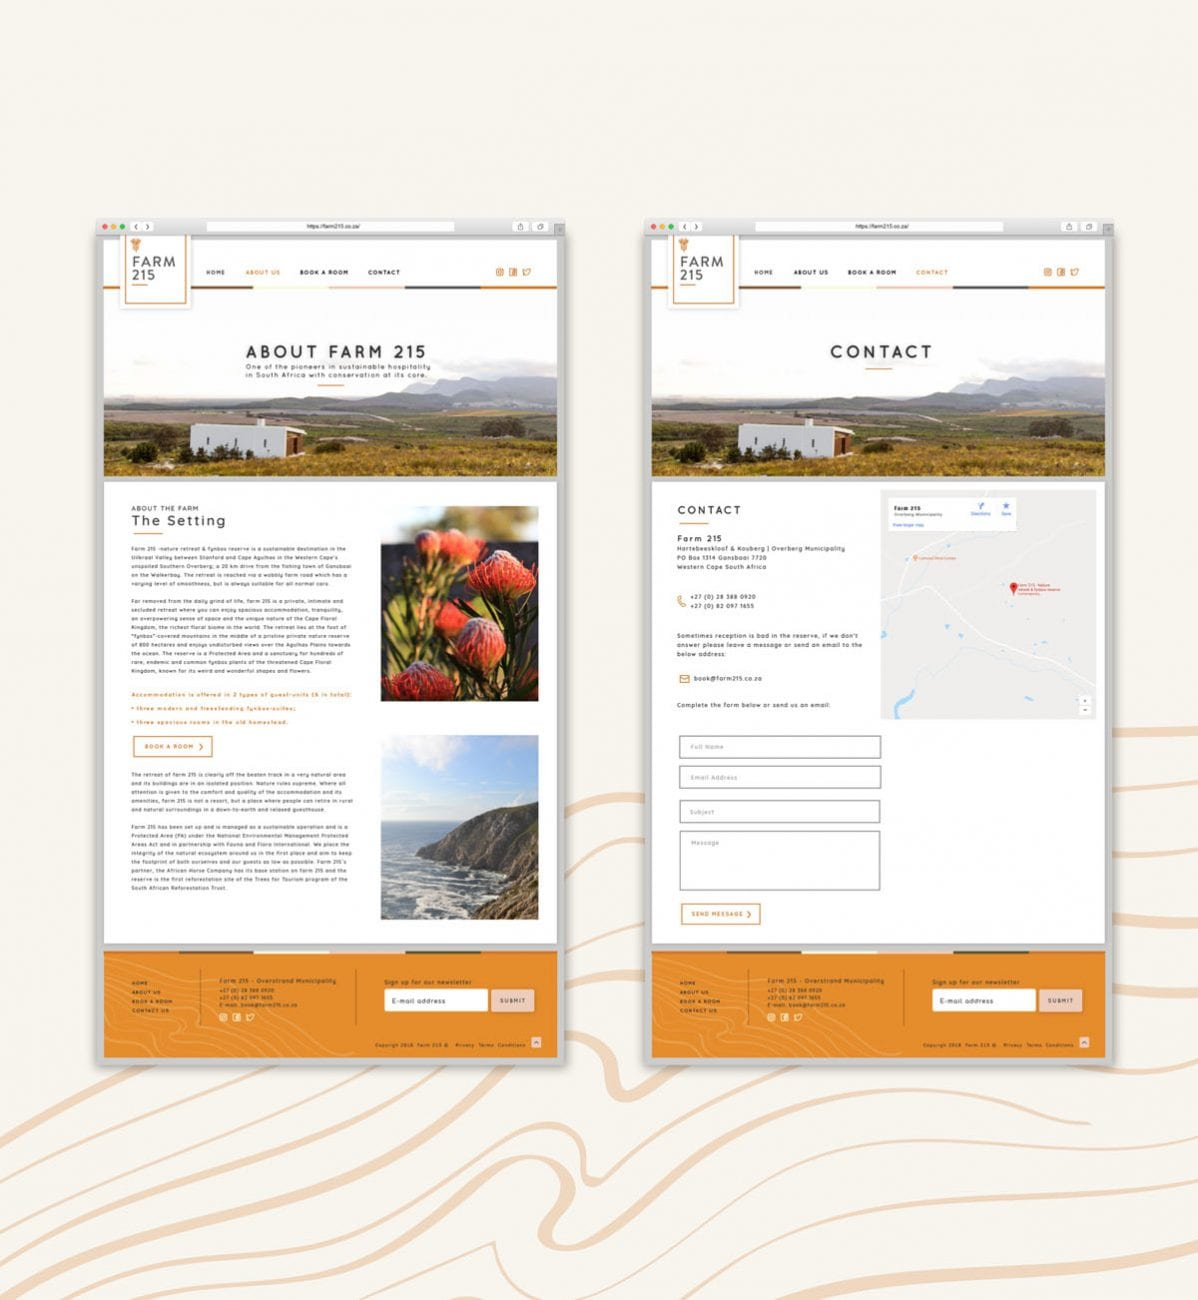 farm-215-showcase_other-pages-contact-about